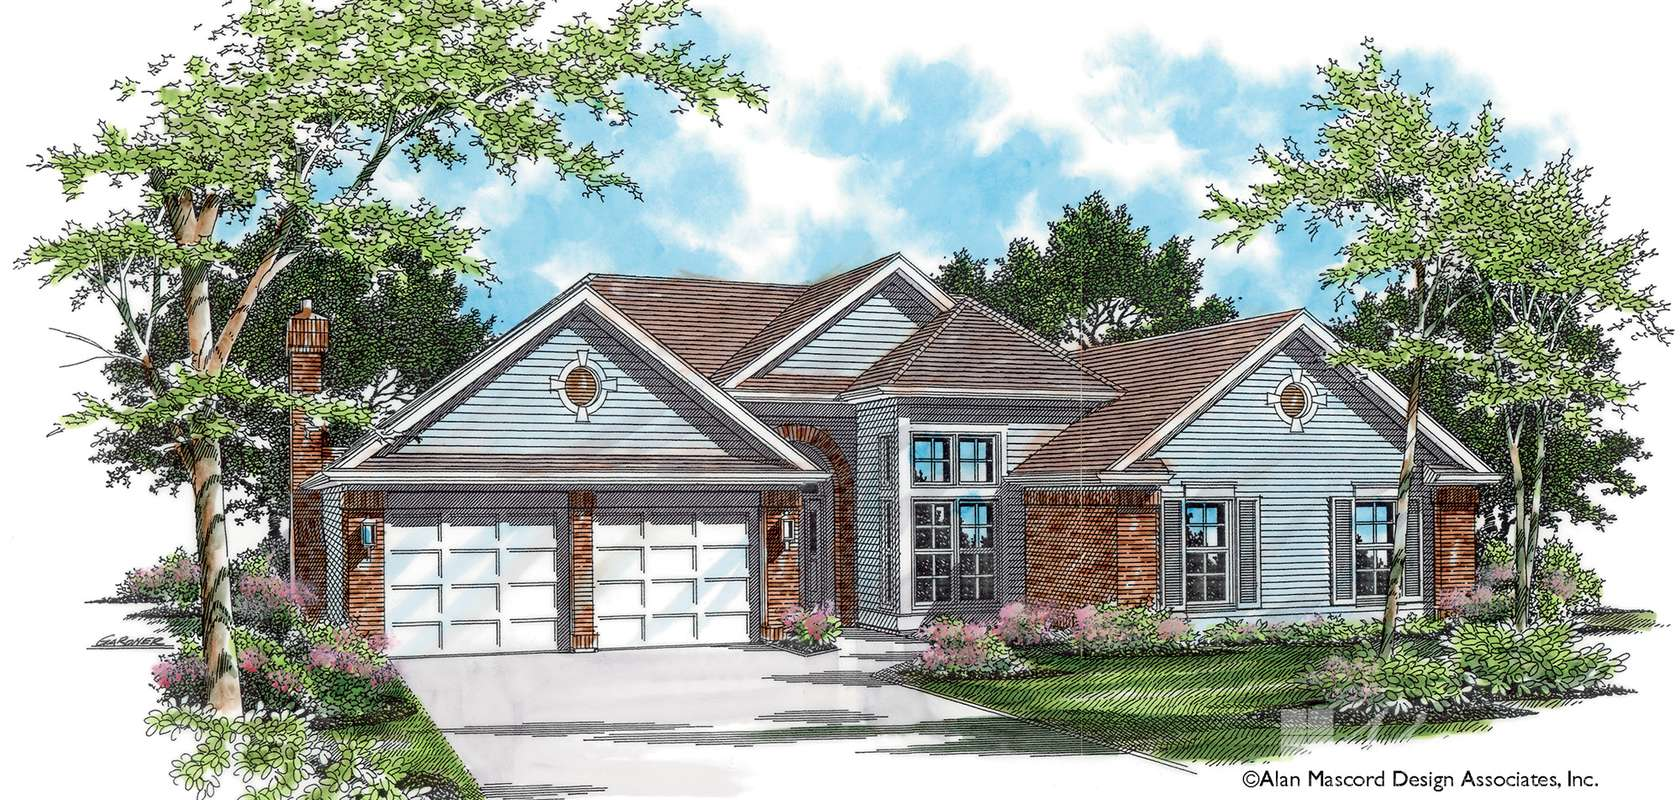 Mascord House Plan 1211: The Emmet